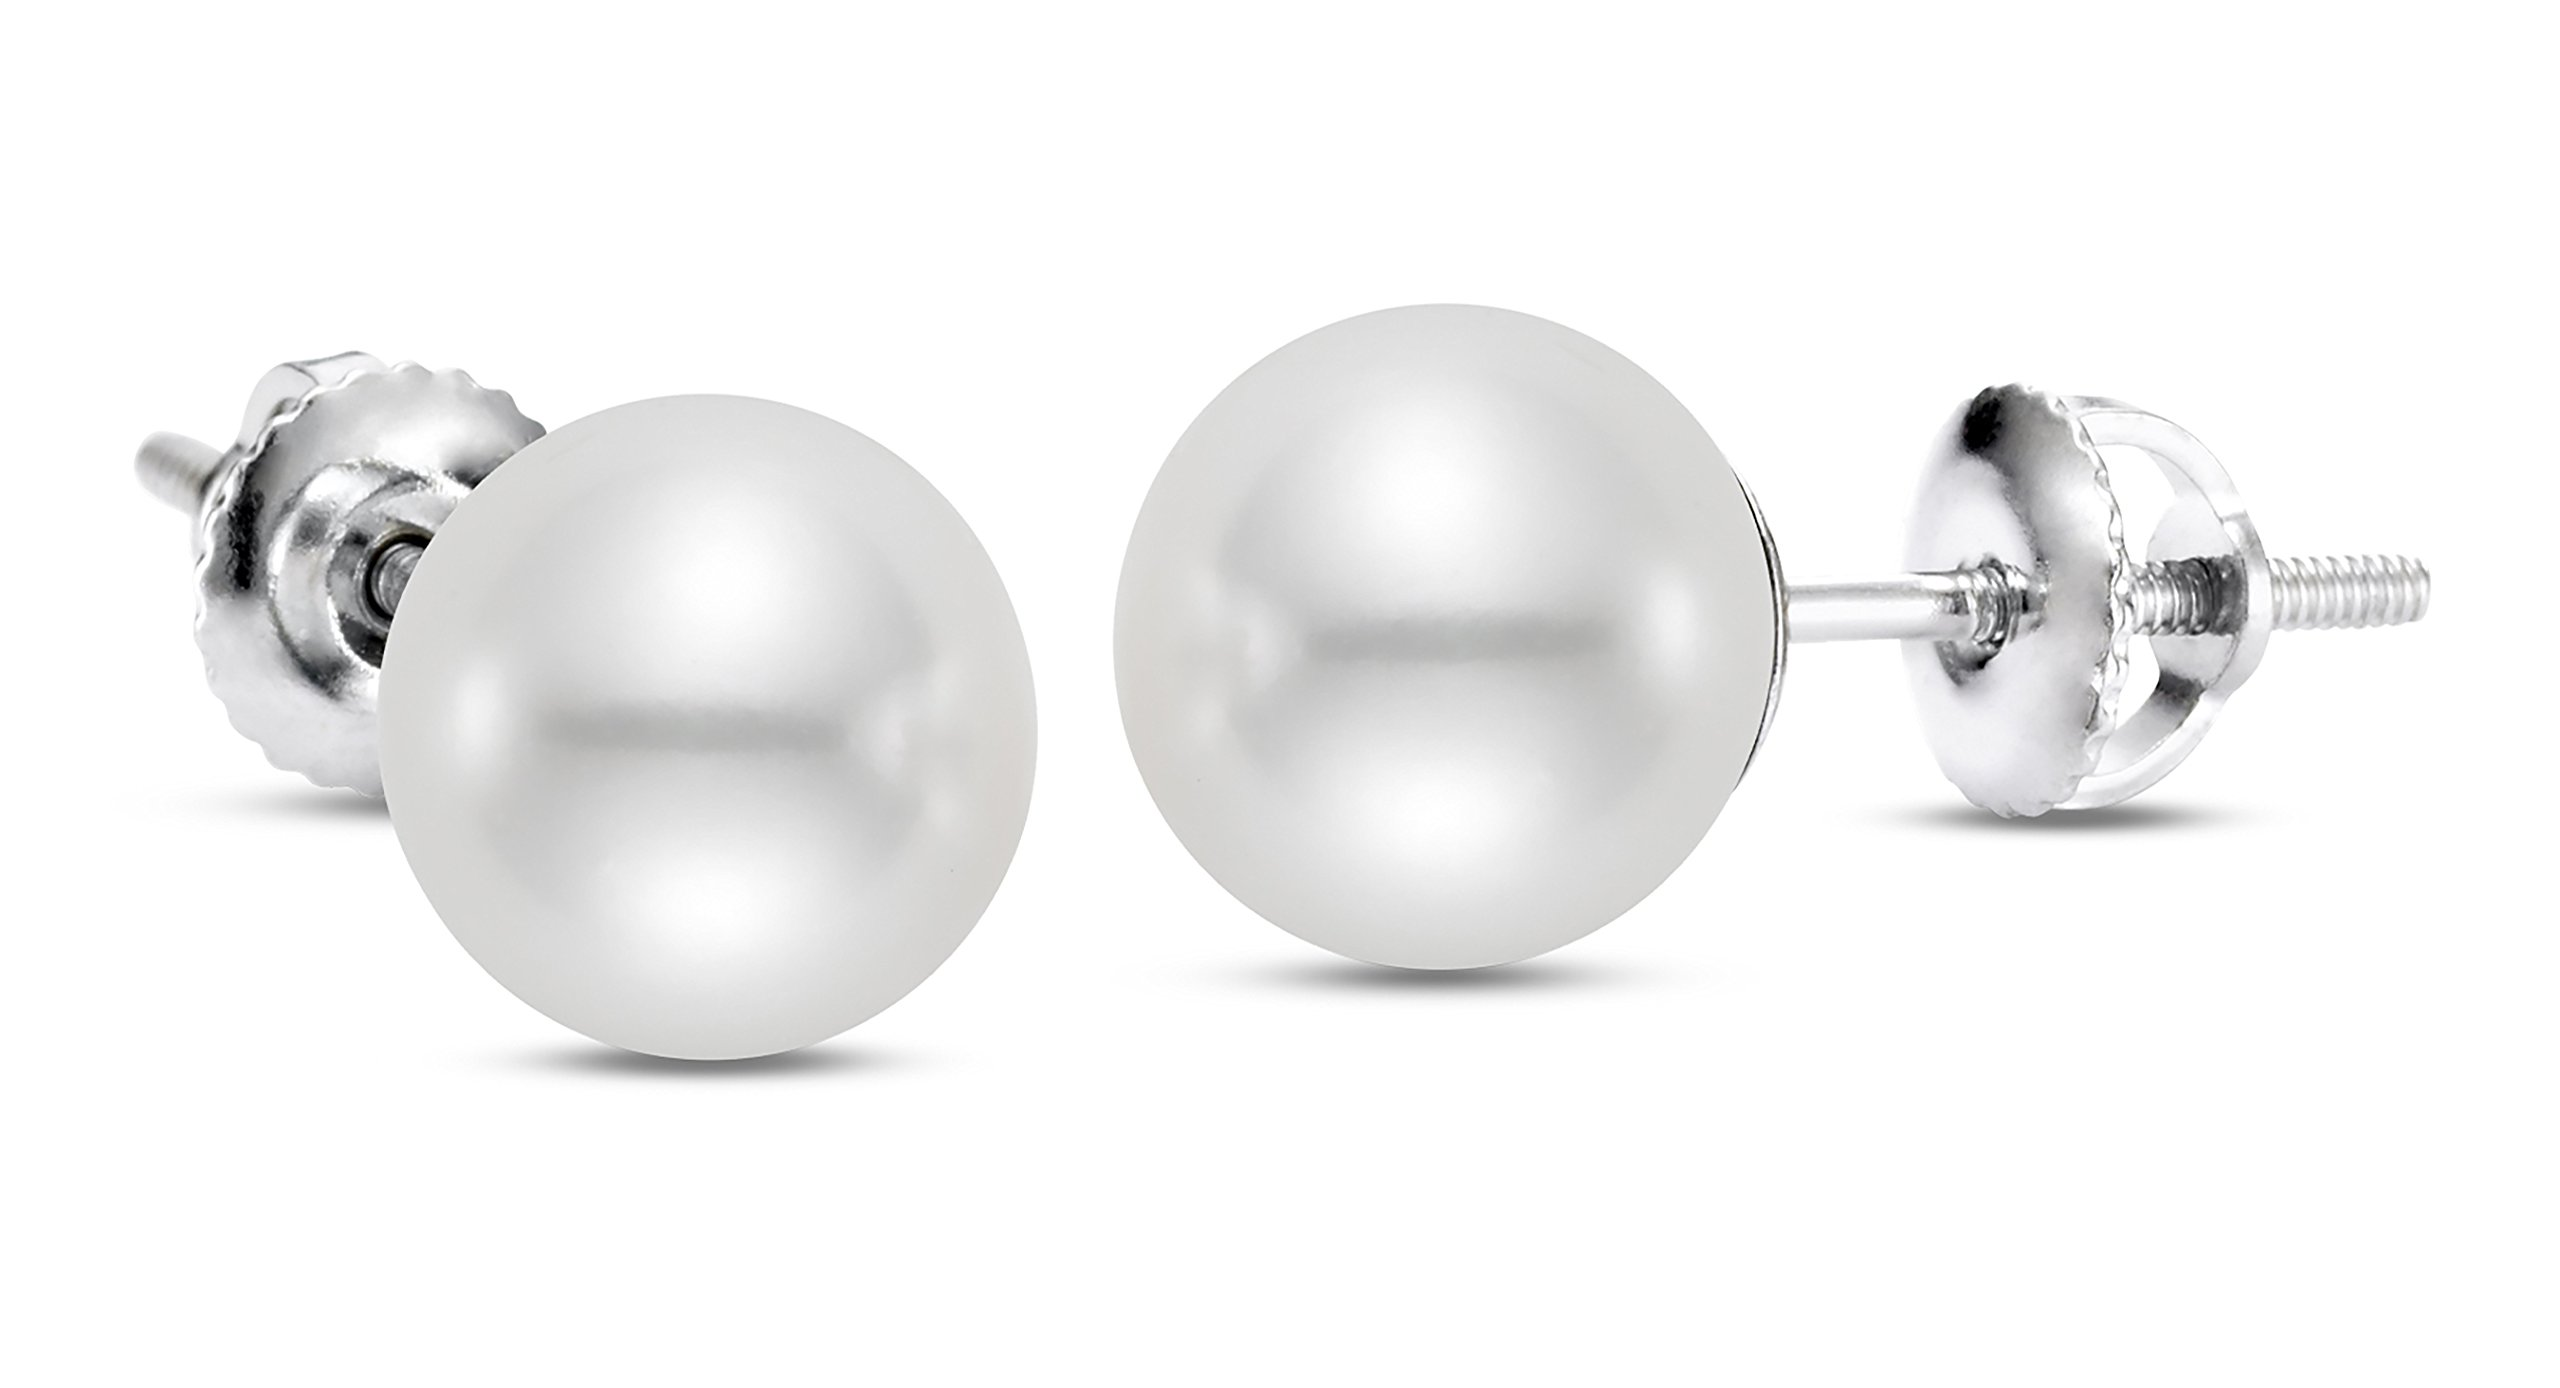 14K White Gold, White Japanese Akoya Cultured Pearl Earrings (7.0-7.5mm), AAAA Quality, Screw Back by ISAAC WESTMAN